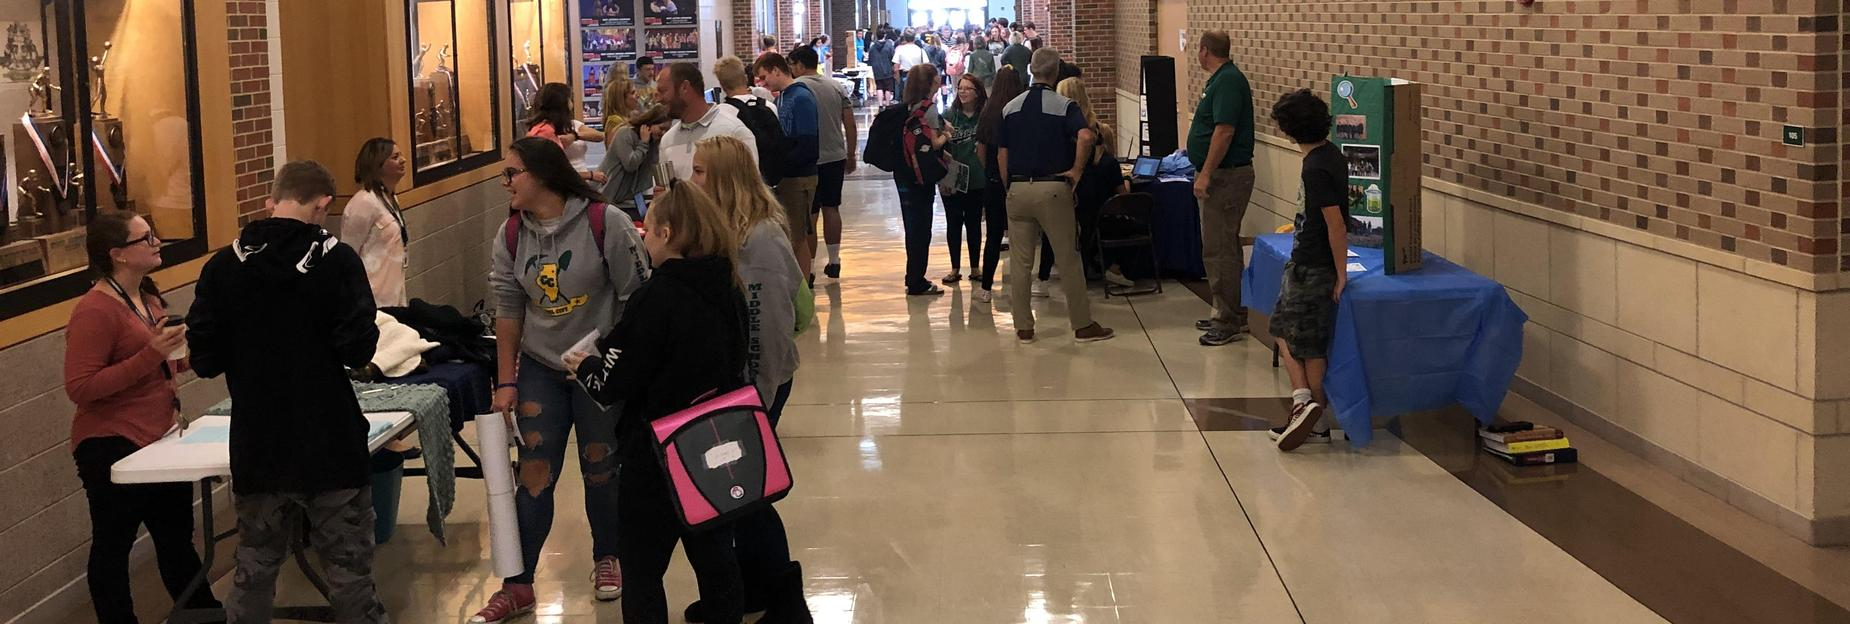 Packed hallways learning about clubs